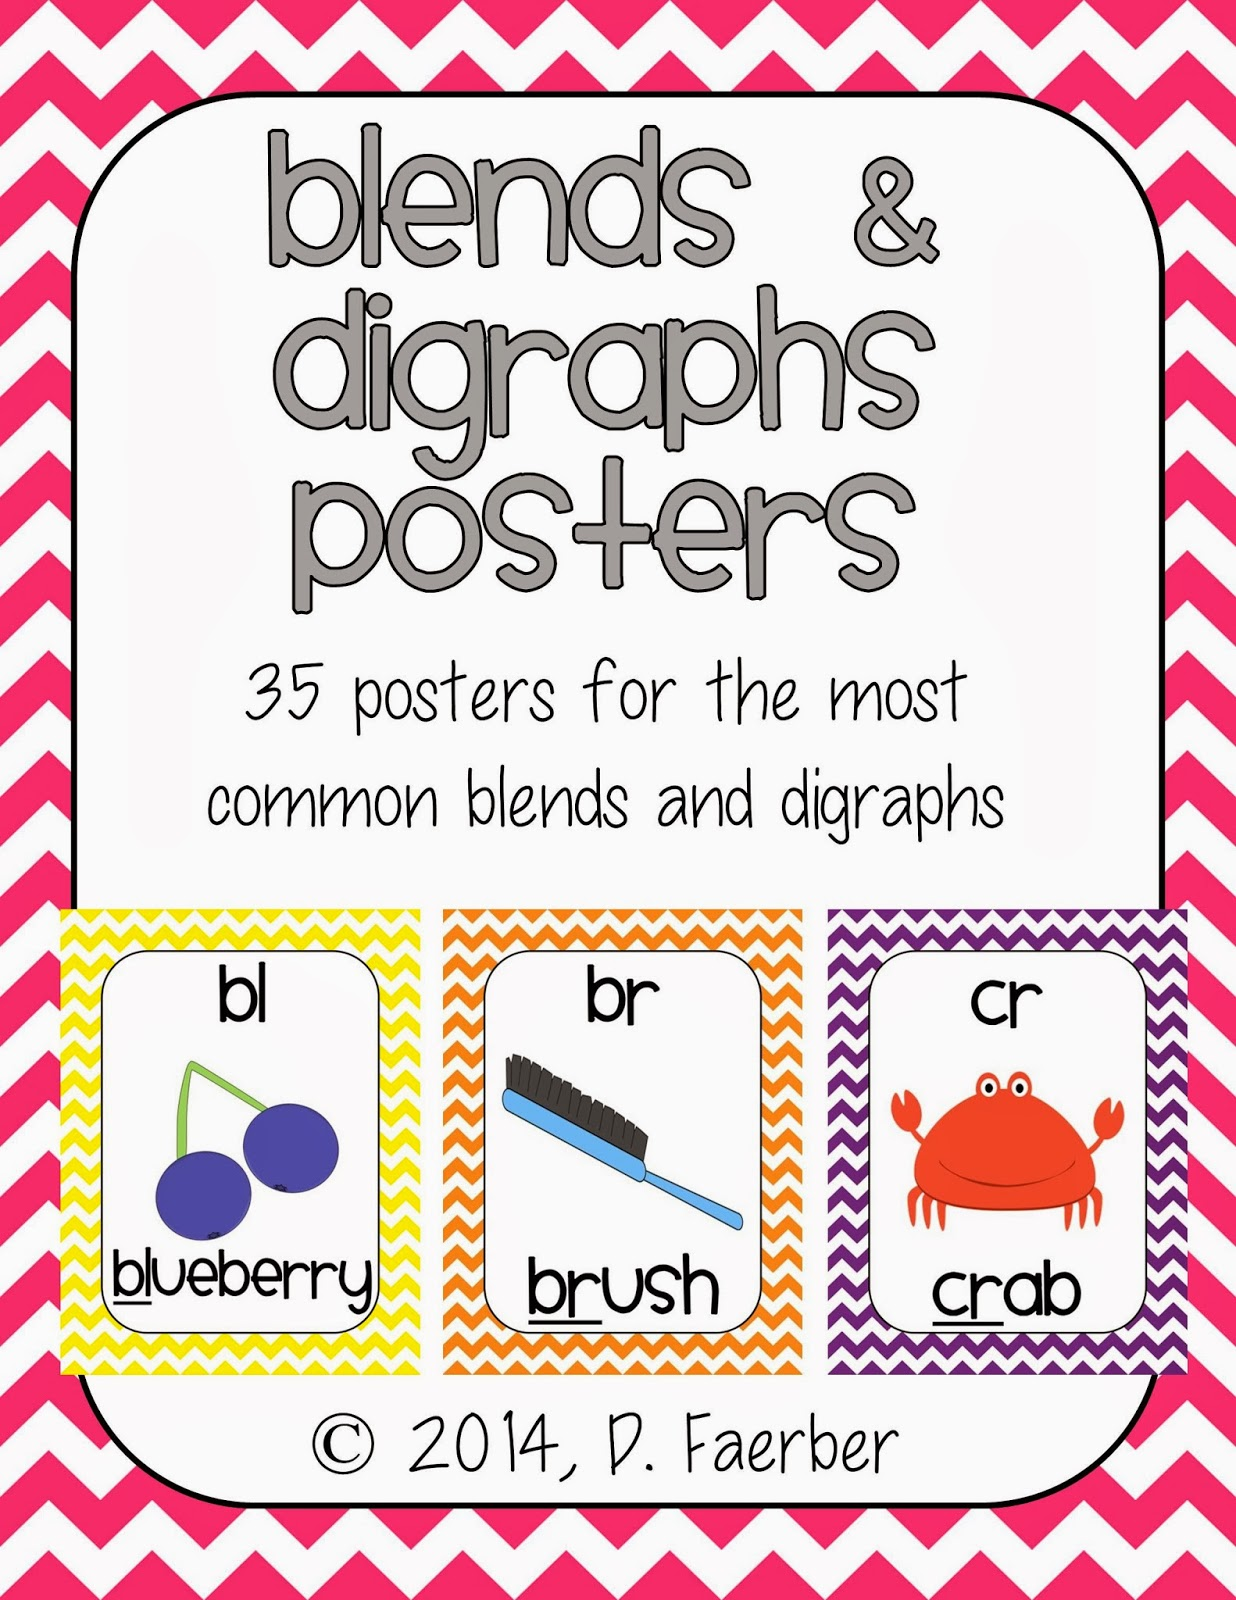 http://www.teacherspayteachers.com/Product/Blends-and-Digraphs-Posters-in-Bright-Chevron-1087343